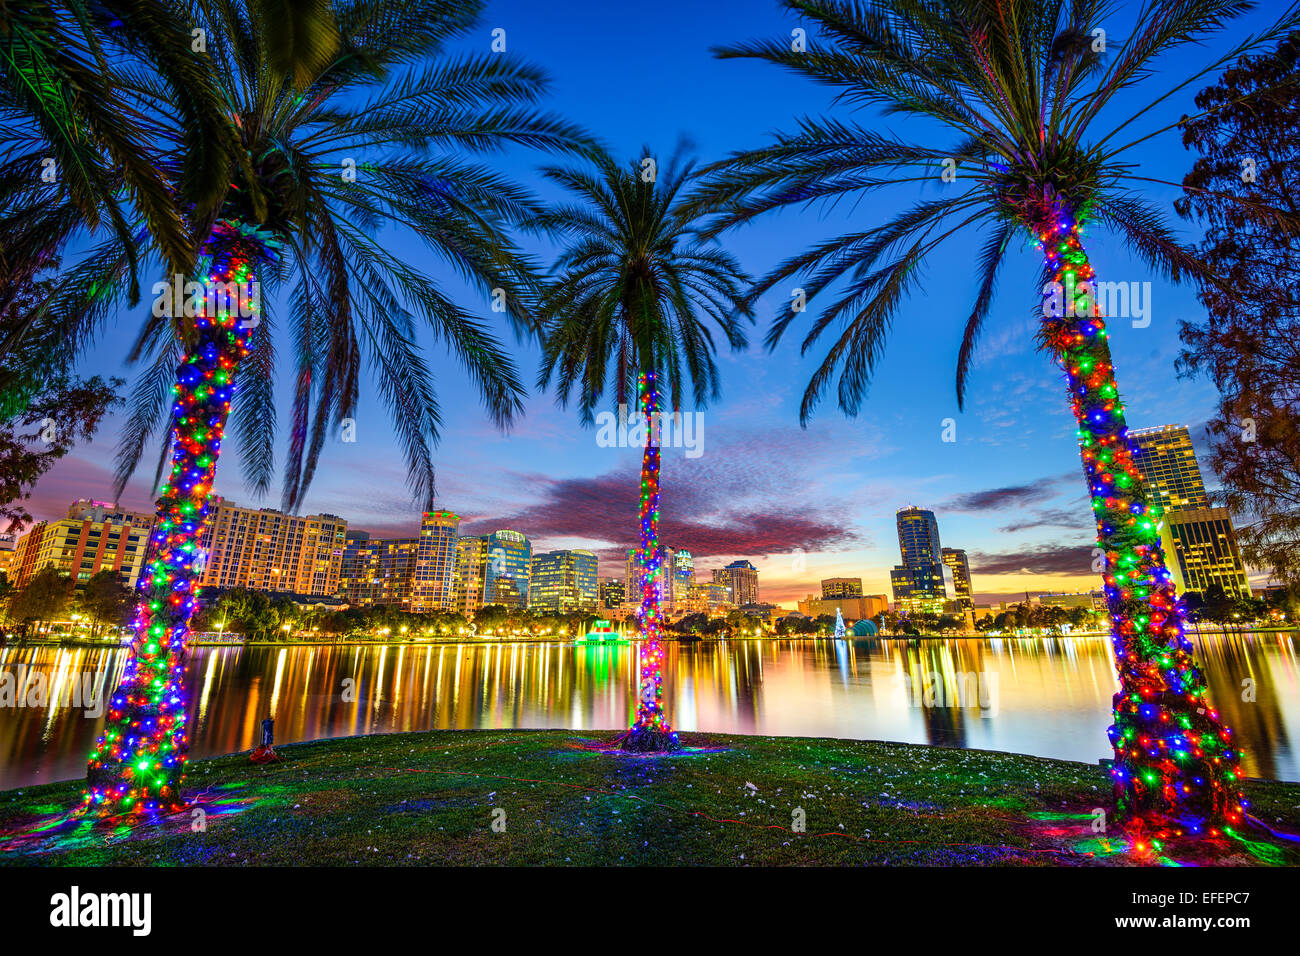 Orlando, Floride, USA Centre-ville paysage urbain du lac Eola. Photo Stock